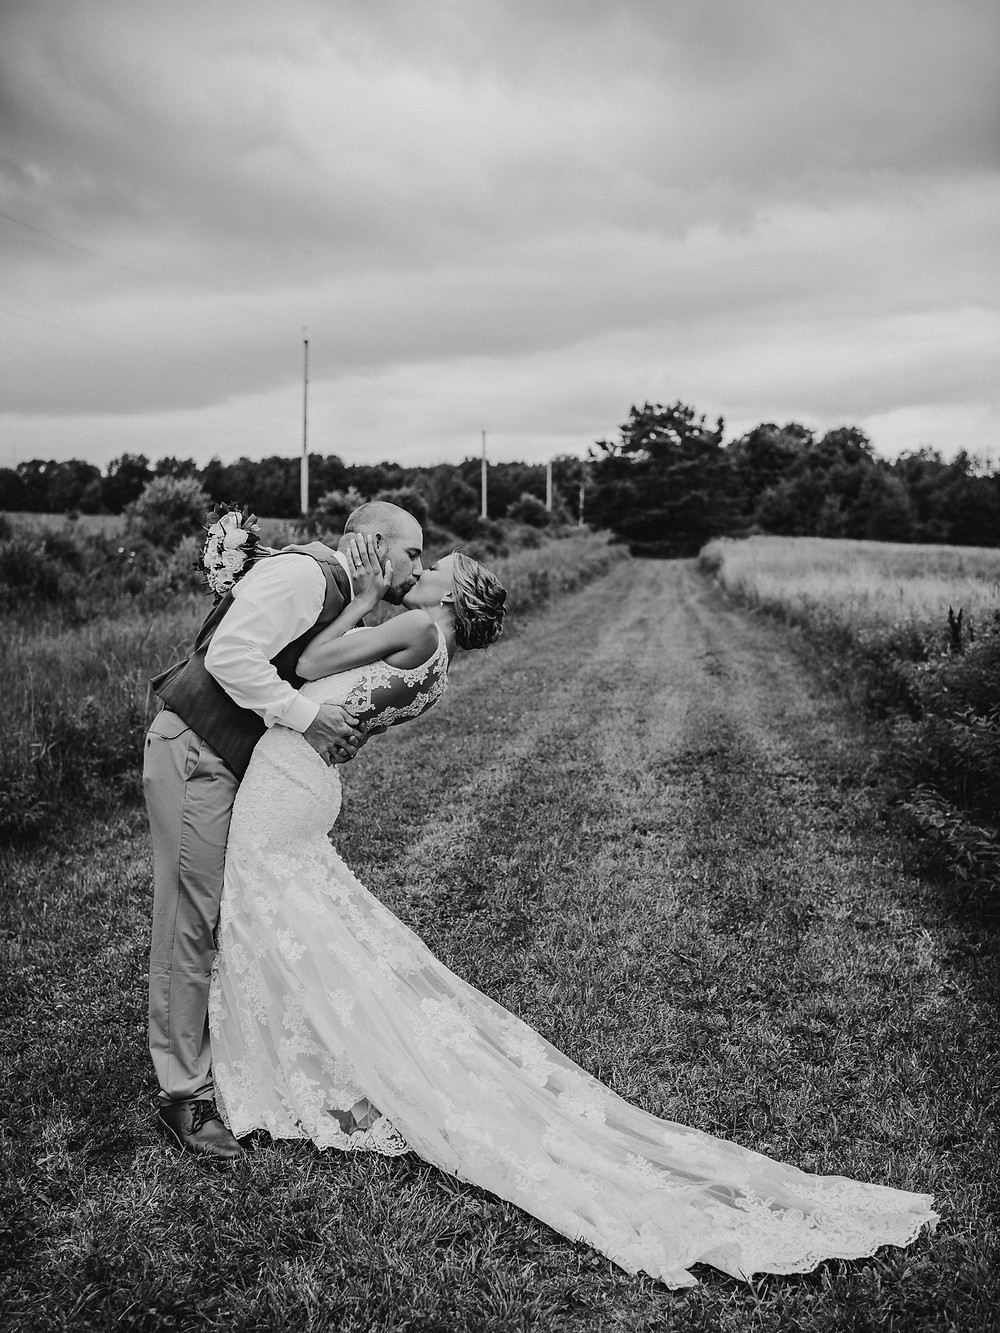 Bride and groom kiss after wedding - Rochester, NY wedding photographer